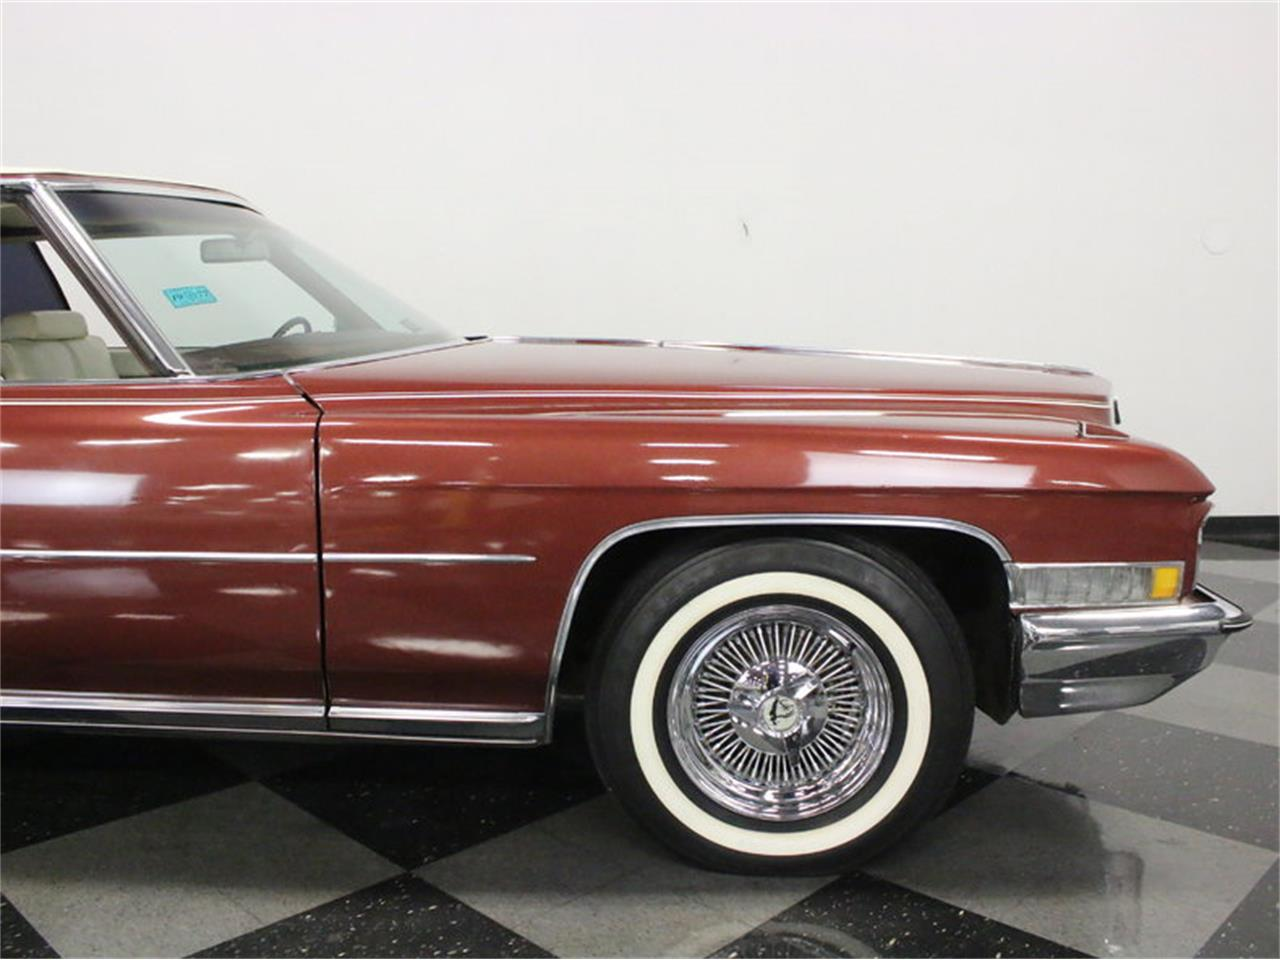 Large Picture of Classic '72 Cadillac Coupe DeVille - $9,995.00 Offered by Streetside Classics - Dallas / Fort Worth - L1A0